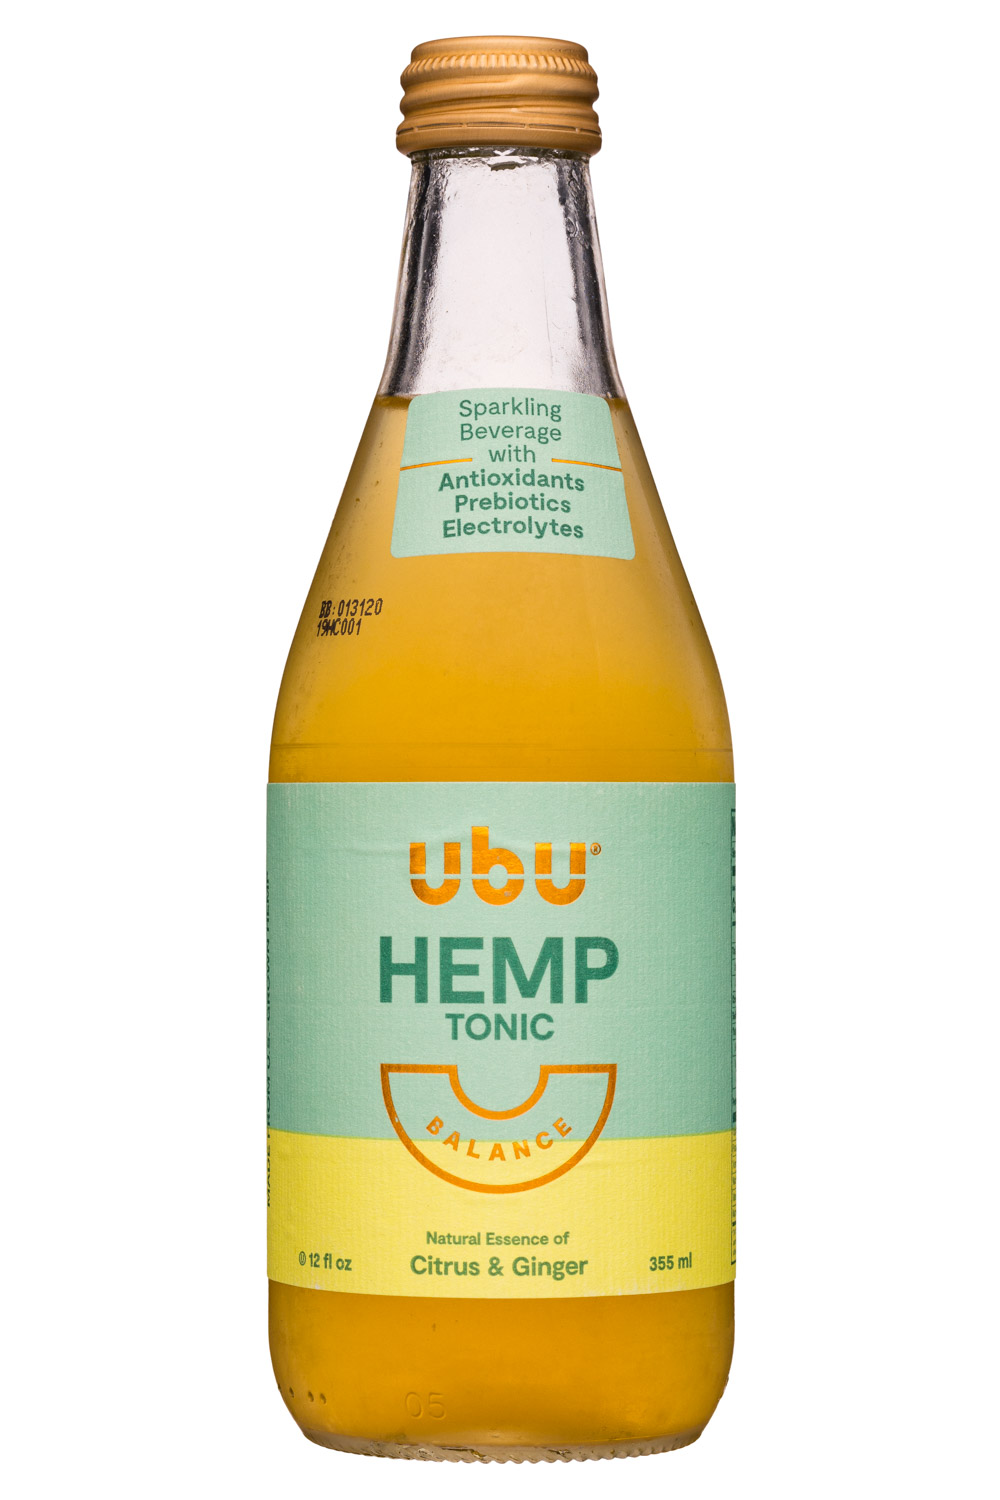 Balance - HEMP TONIC: Citrus & Ginger